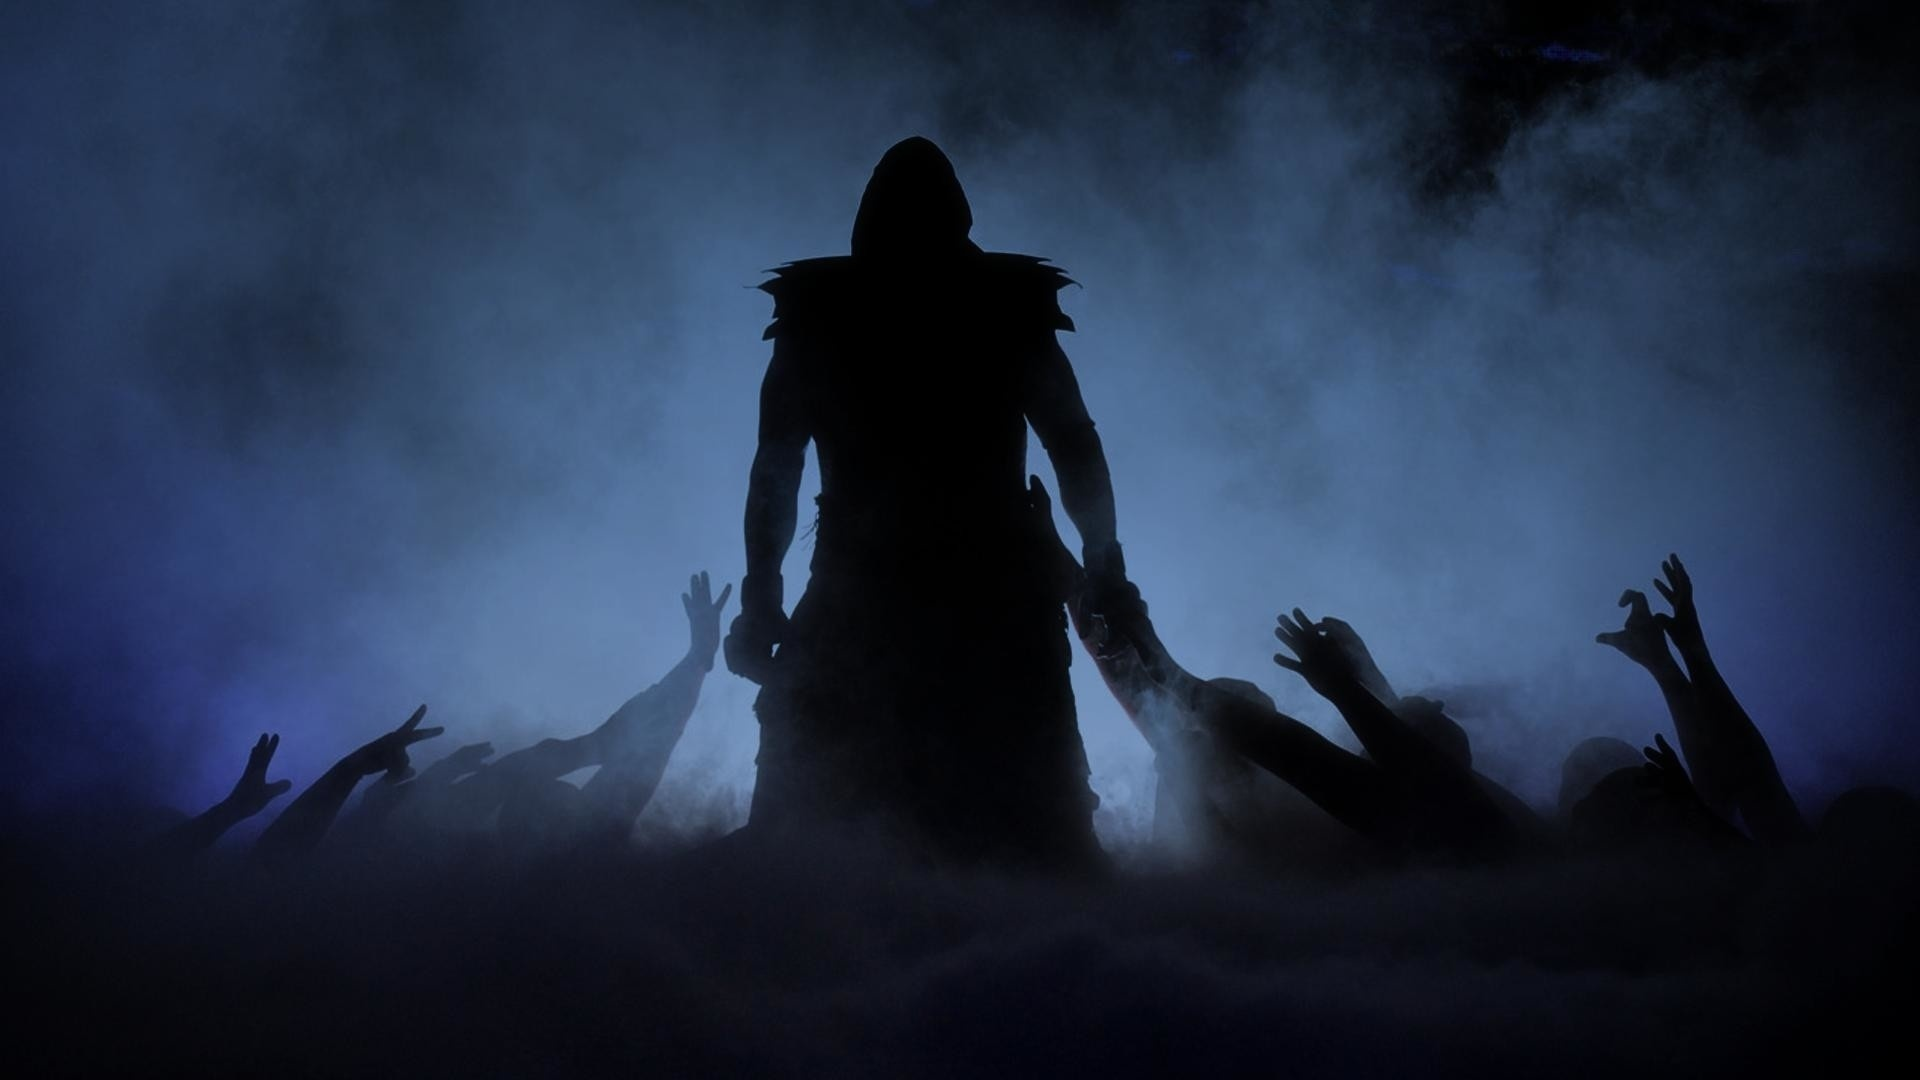 Undertaker 1080p wallpaper